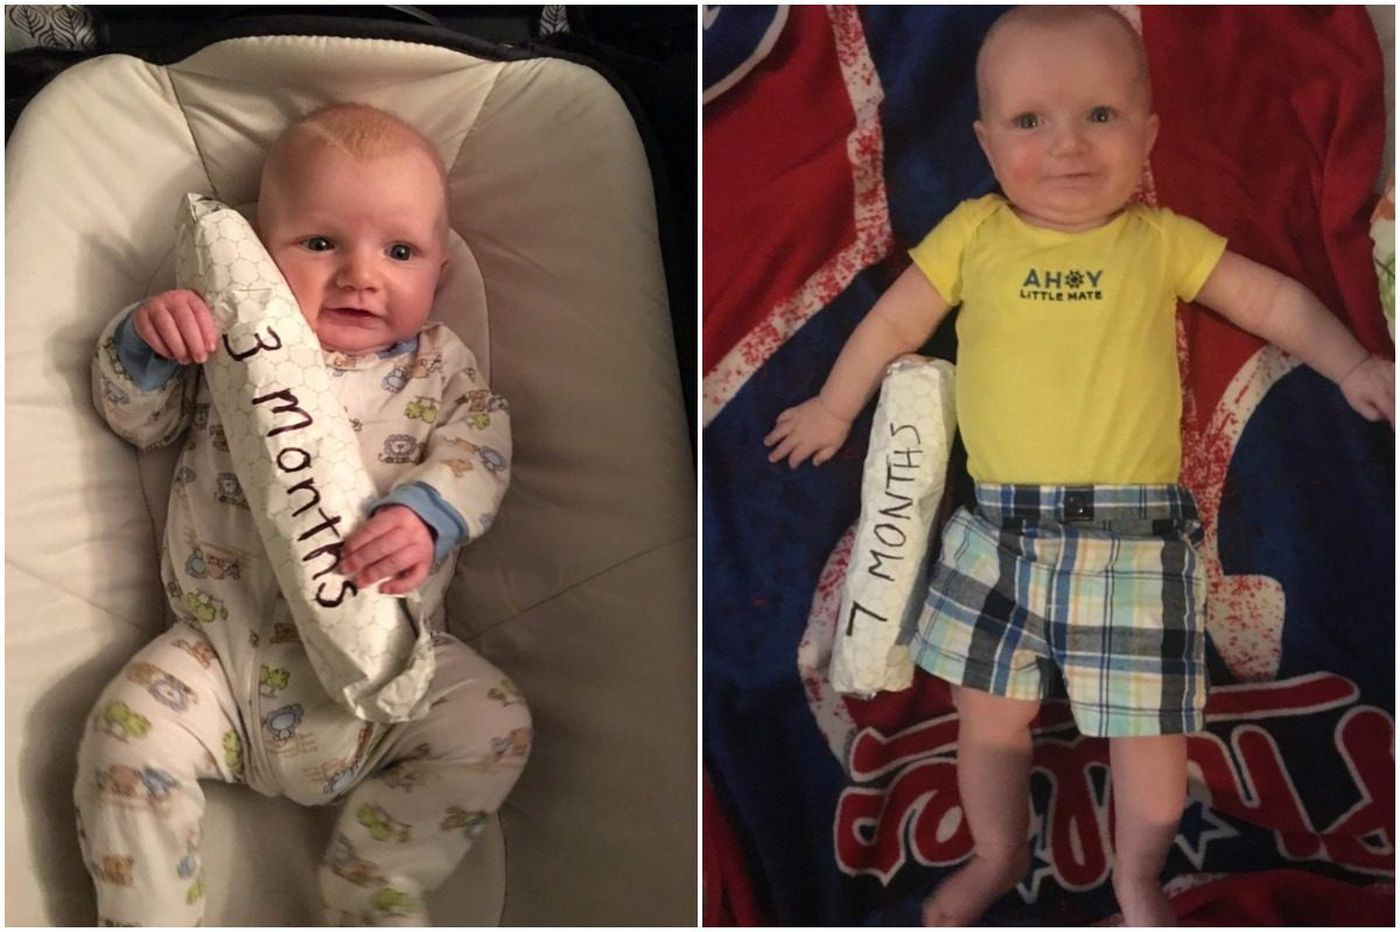 Dad tracks baby's growth wit cheesesteaks; bon appetit staffer eats 16 Philly steaks in 12 hours